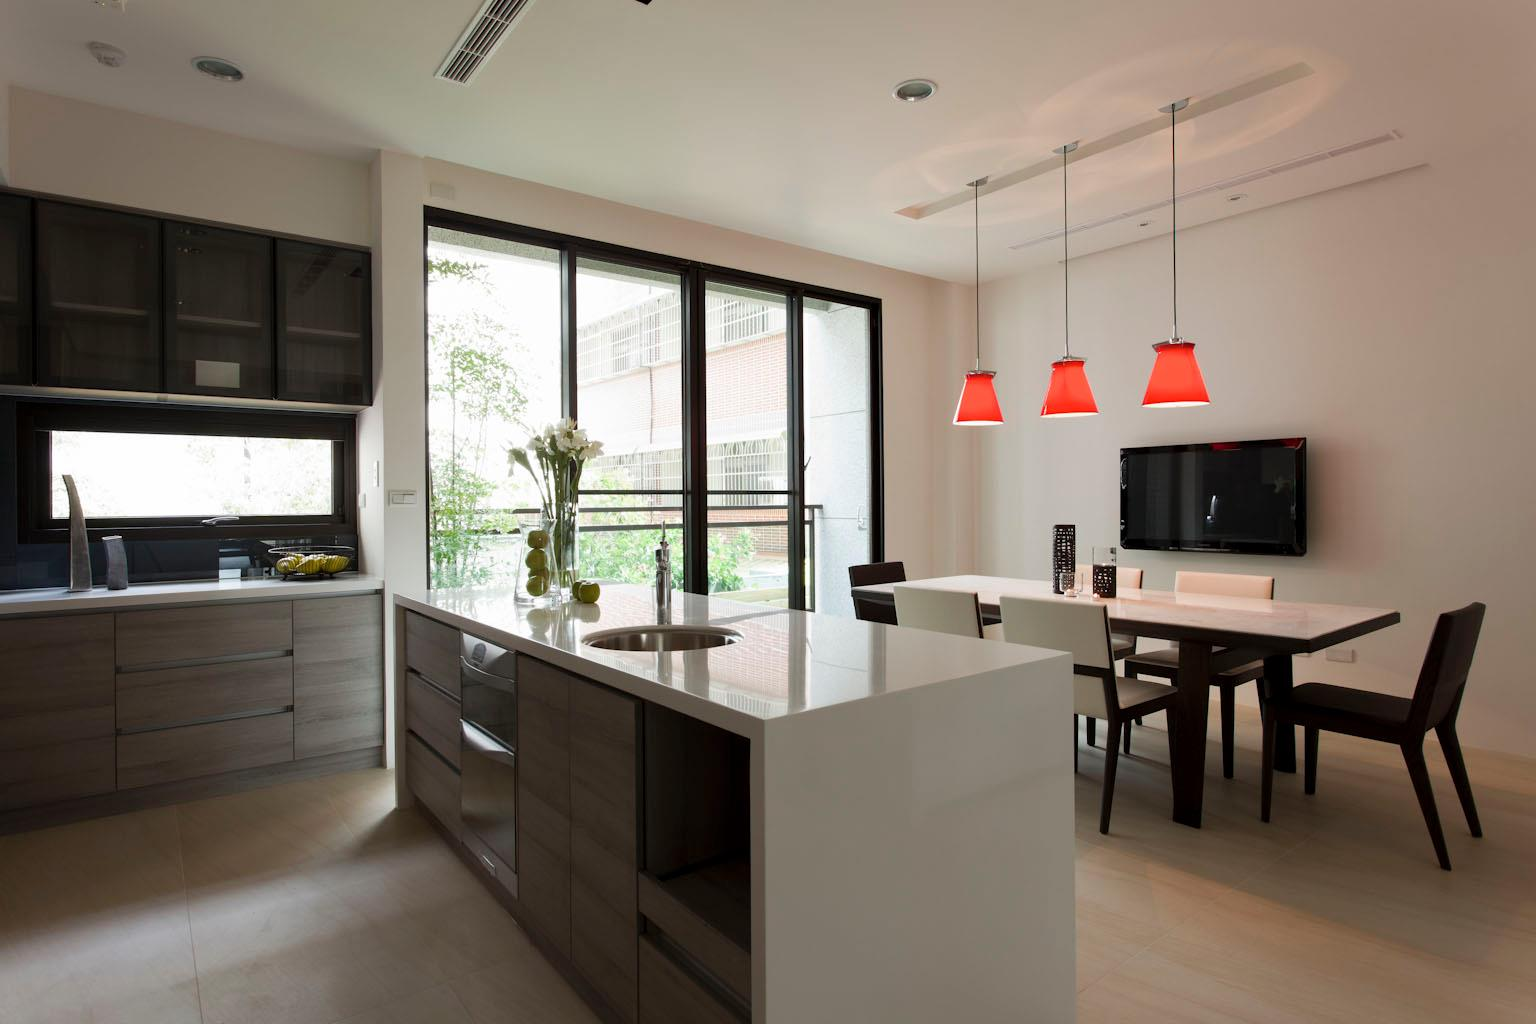 free kitchen units provide a streamlined look in this kitchen diner ...